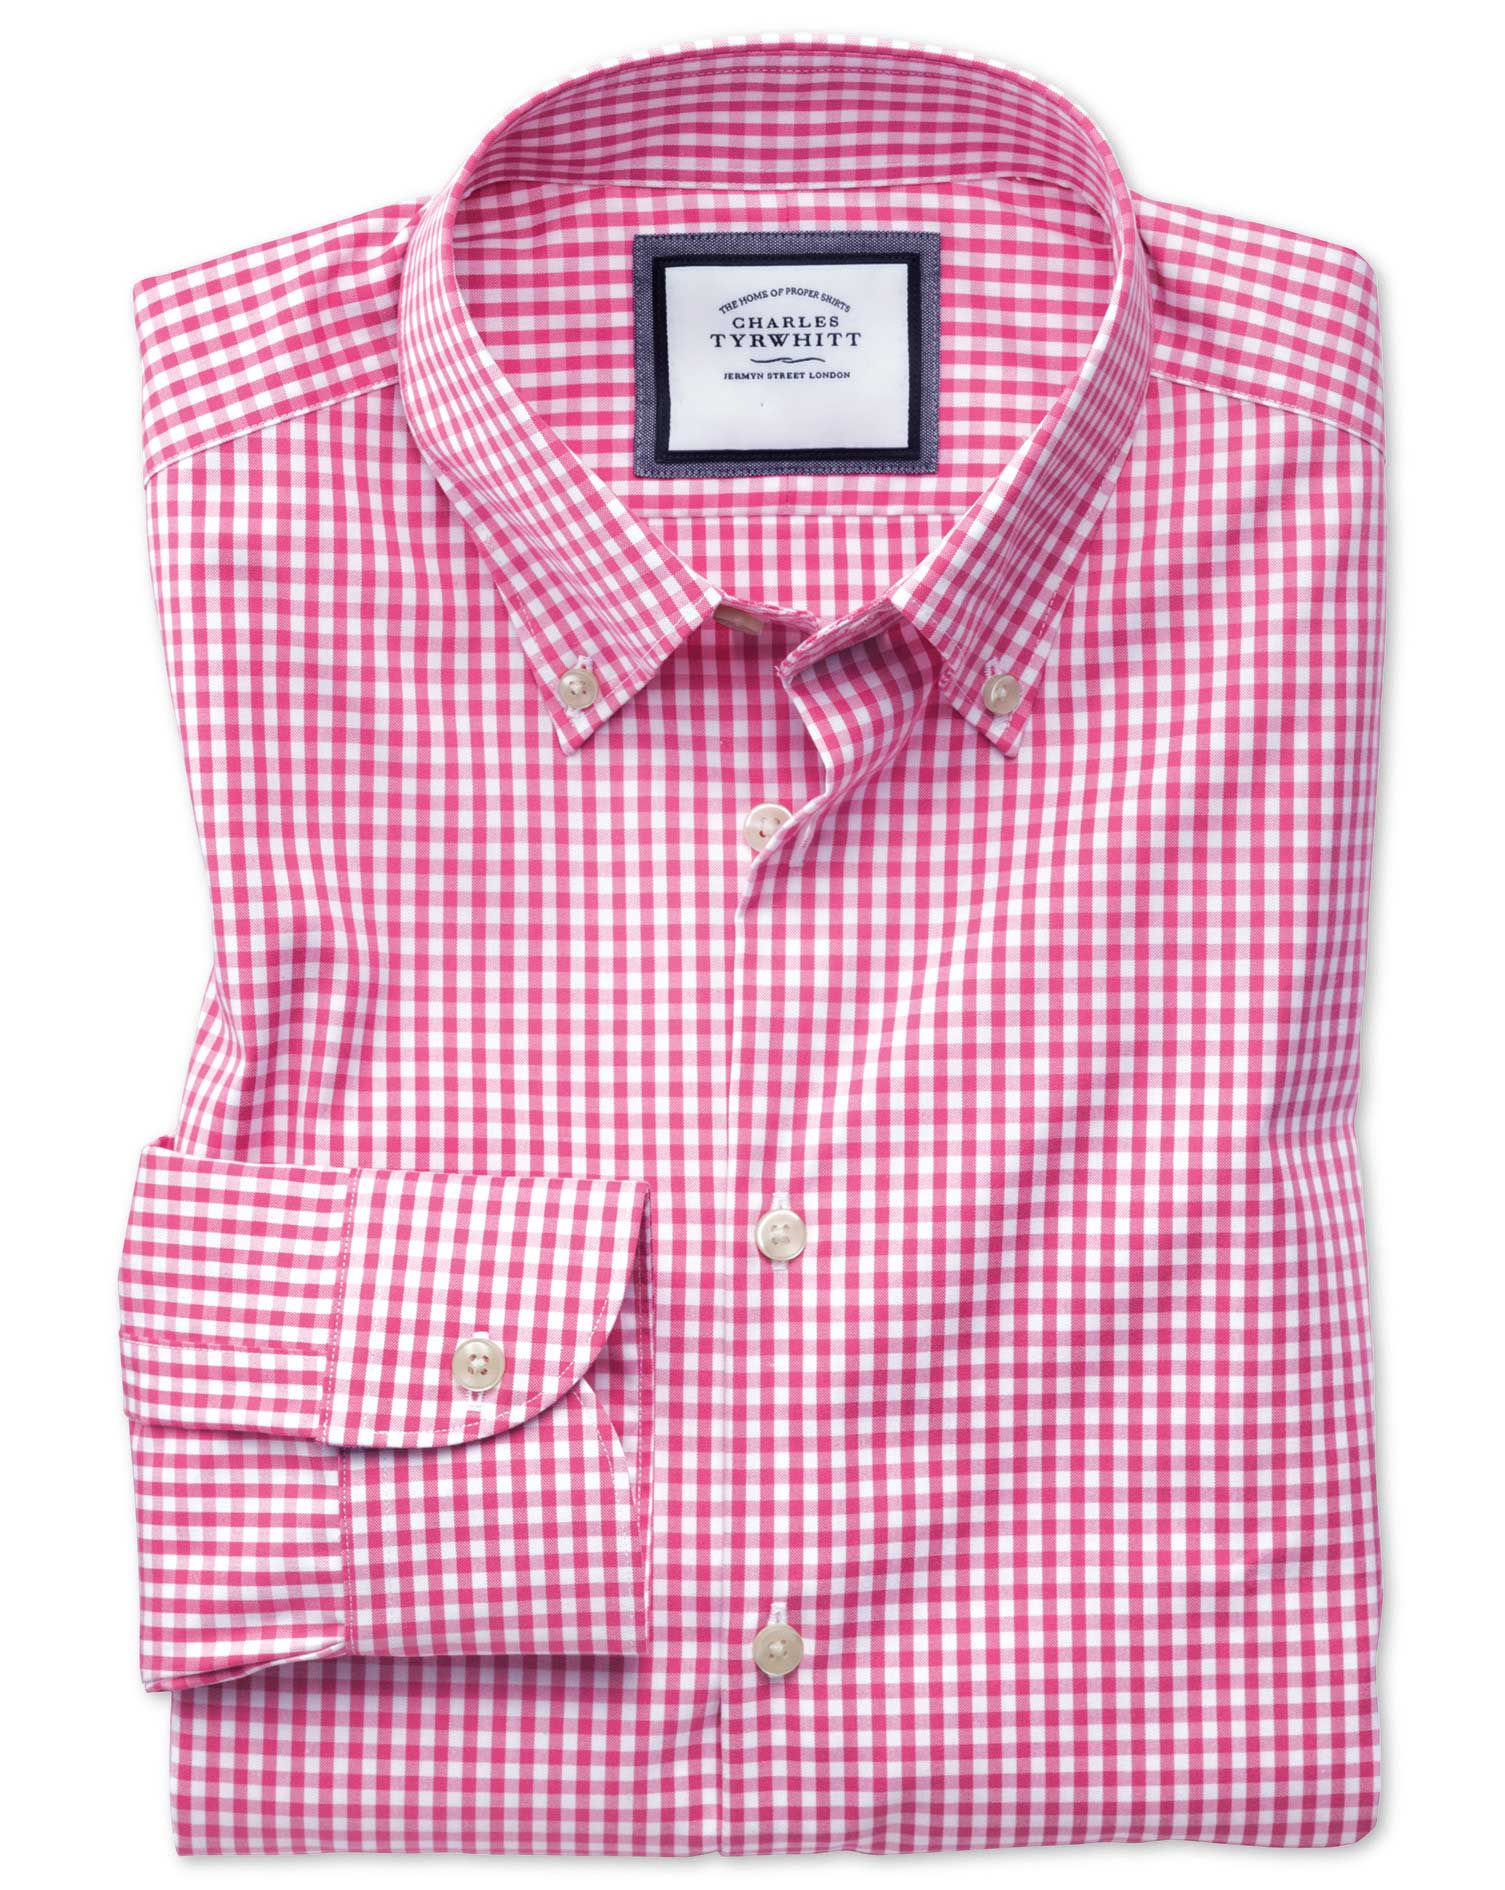 Slim Fit Button-Down Business Casual Non-Iron Pink Cotton Formal Shirt Single Cuff Size 15.5/33 by C